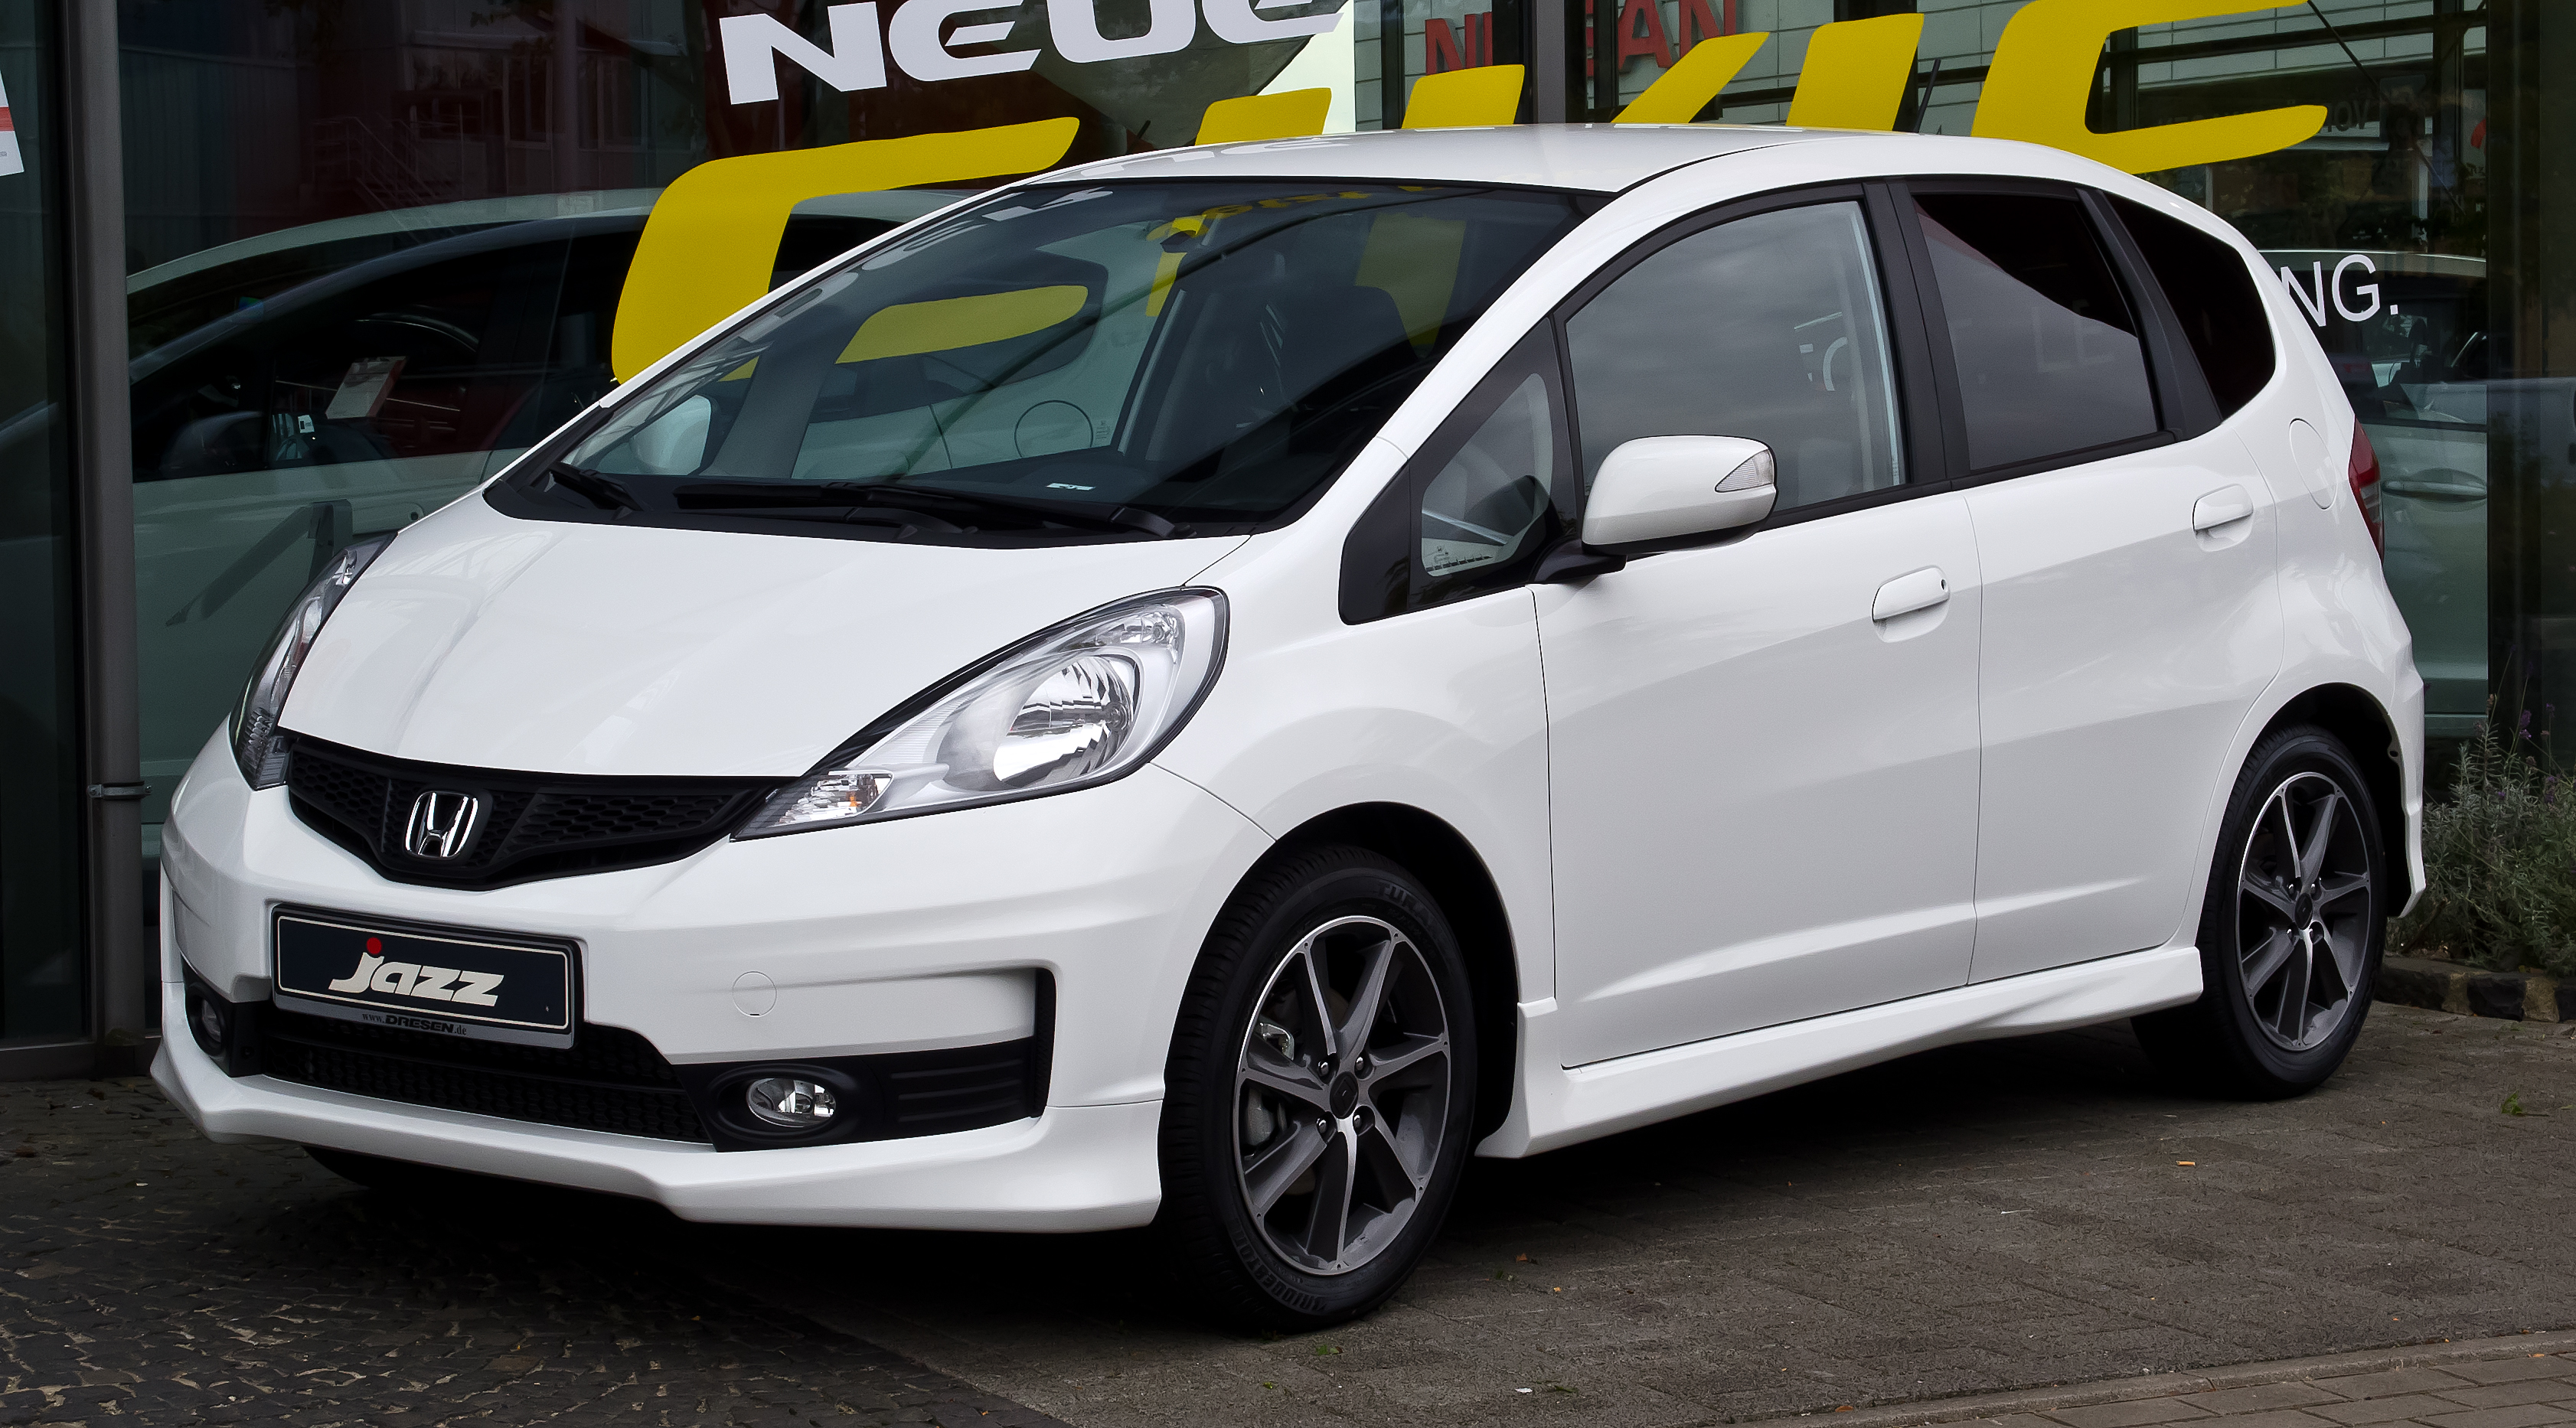 file honda jazz 1 4 i vtec si iii facelift frontansicht 23 september 2012 d. Black Bedroom Furniture Sets. Home Design Ideas